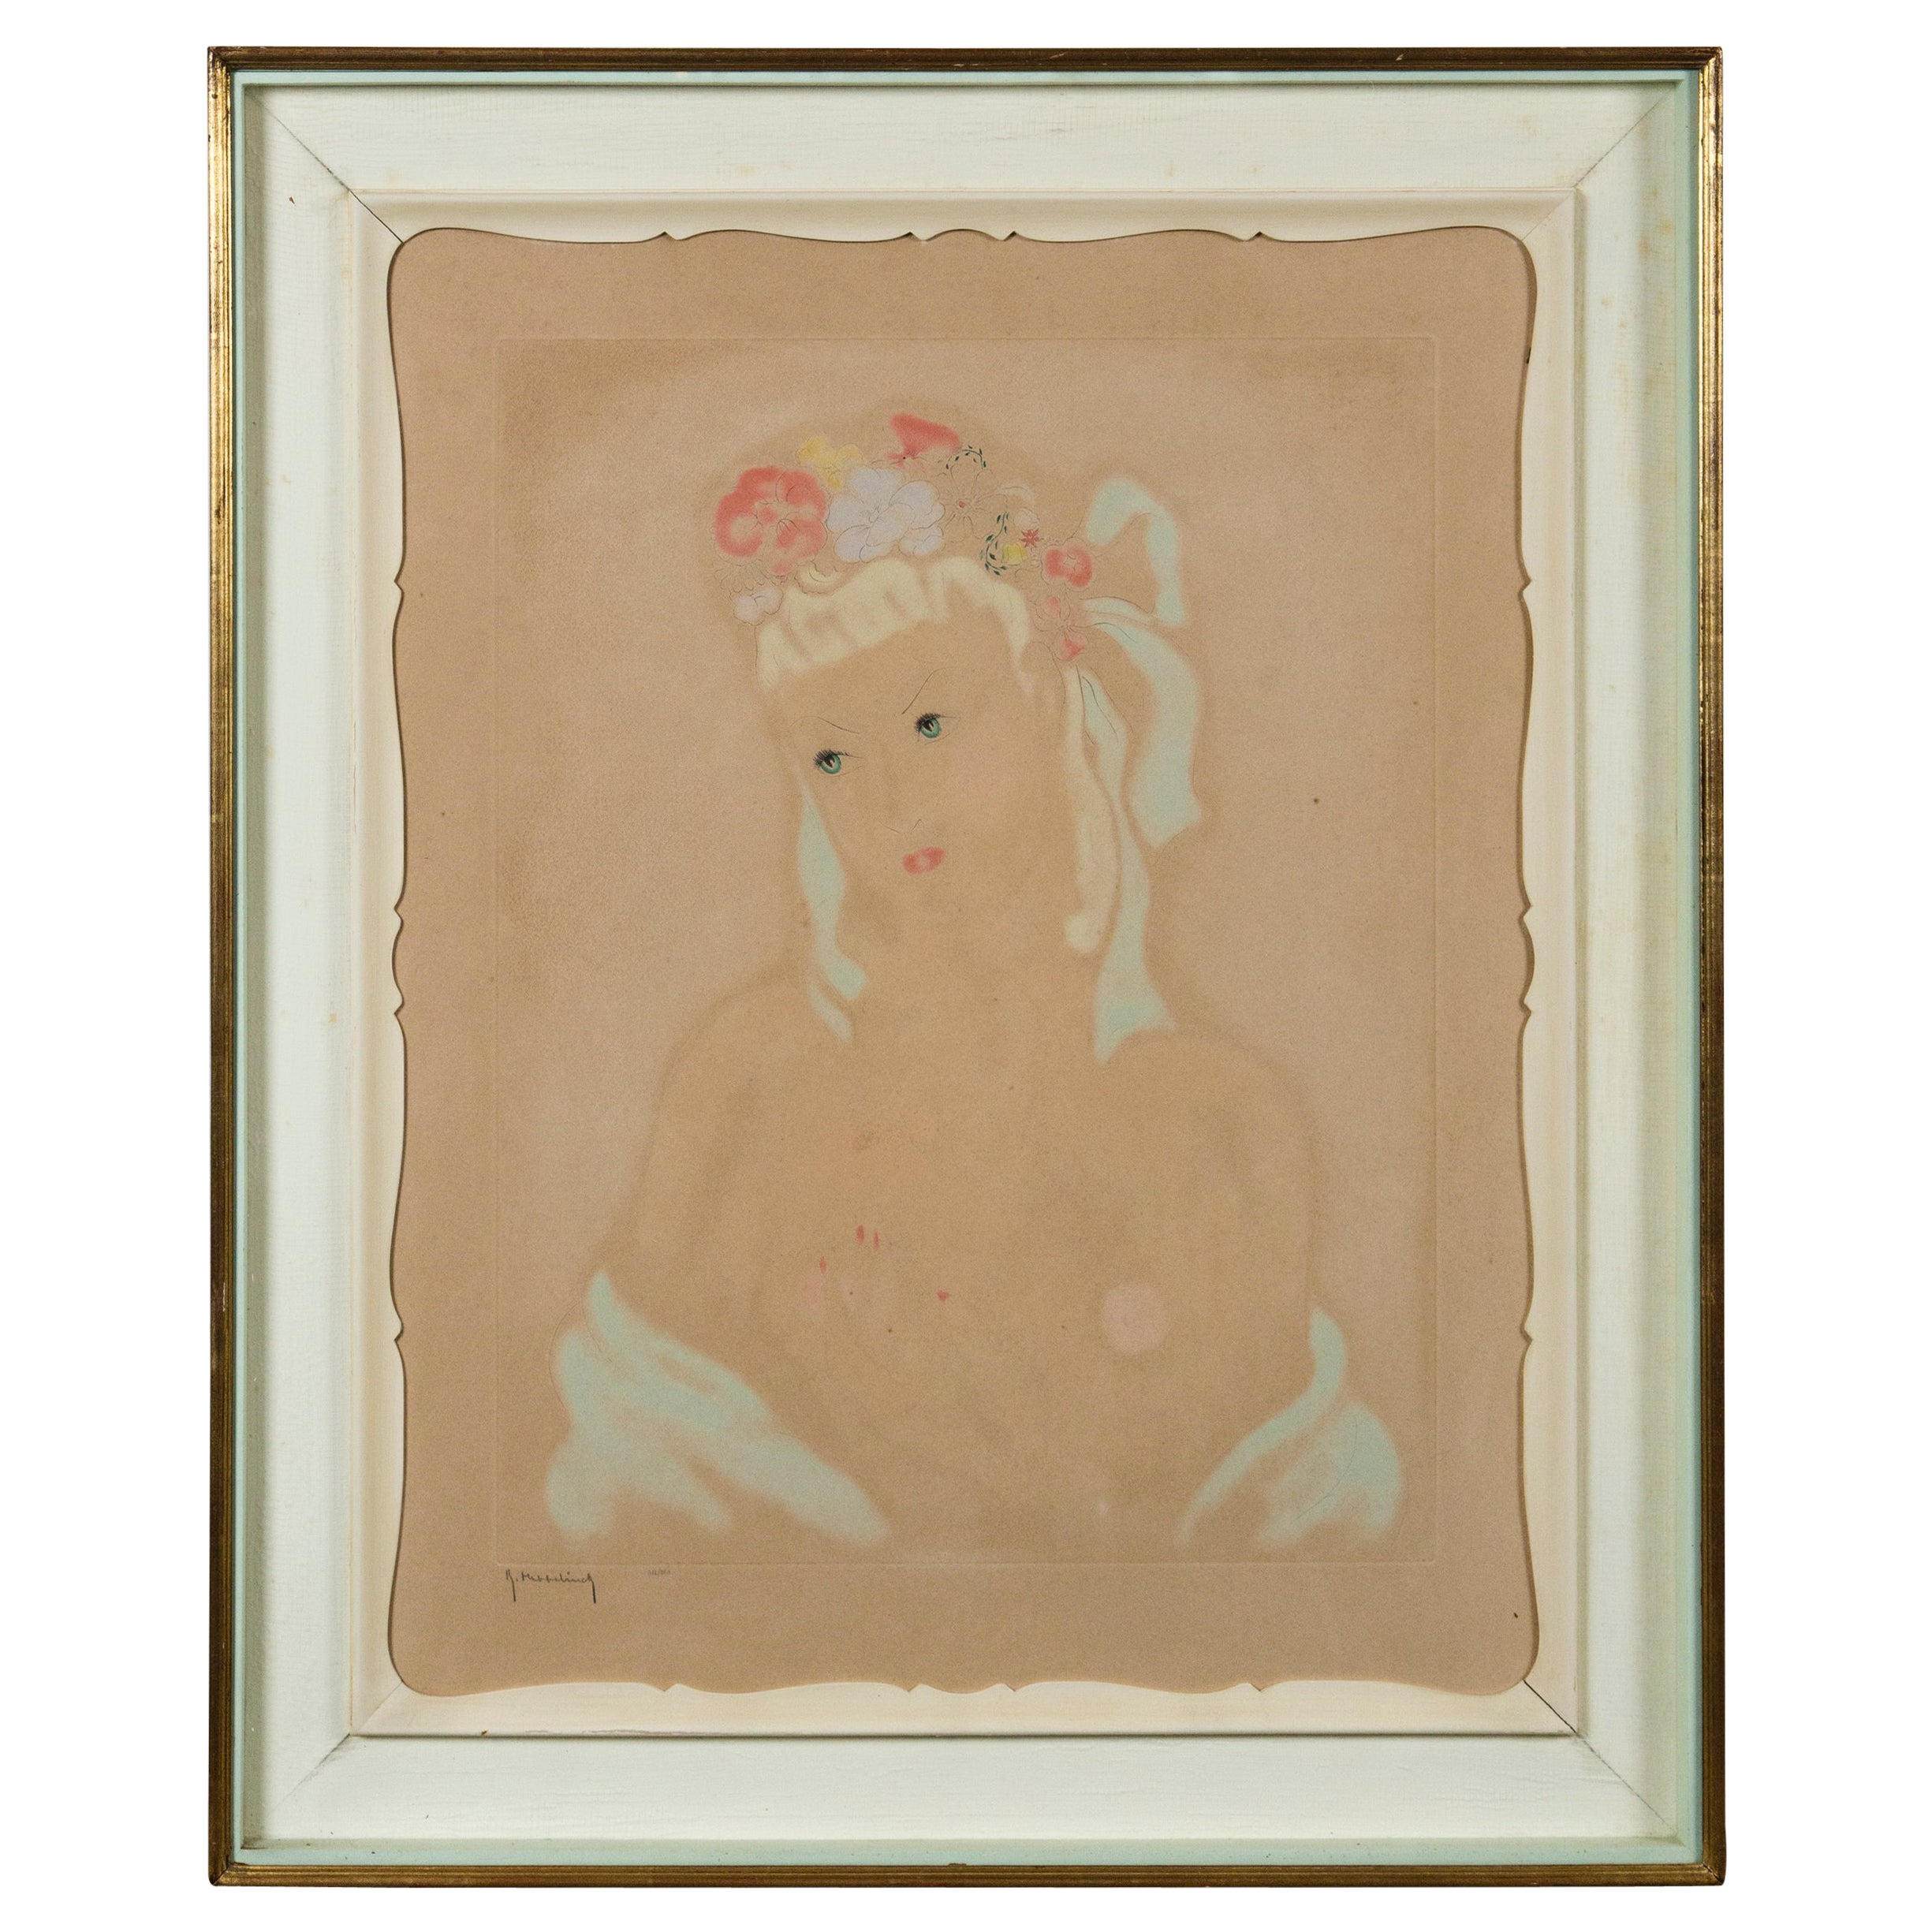 French 1940s Pastel Drawing of a Woman, Original French Framing